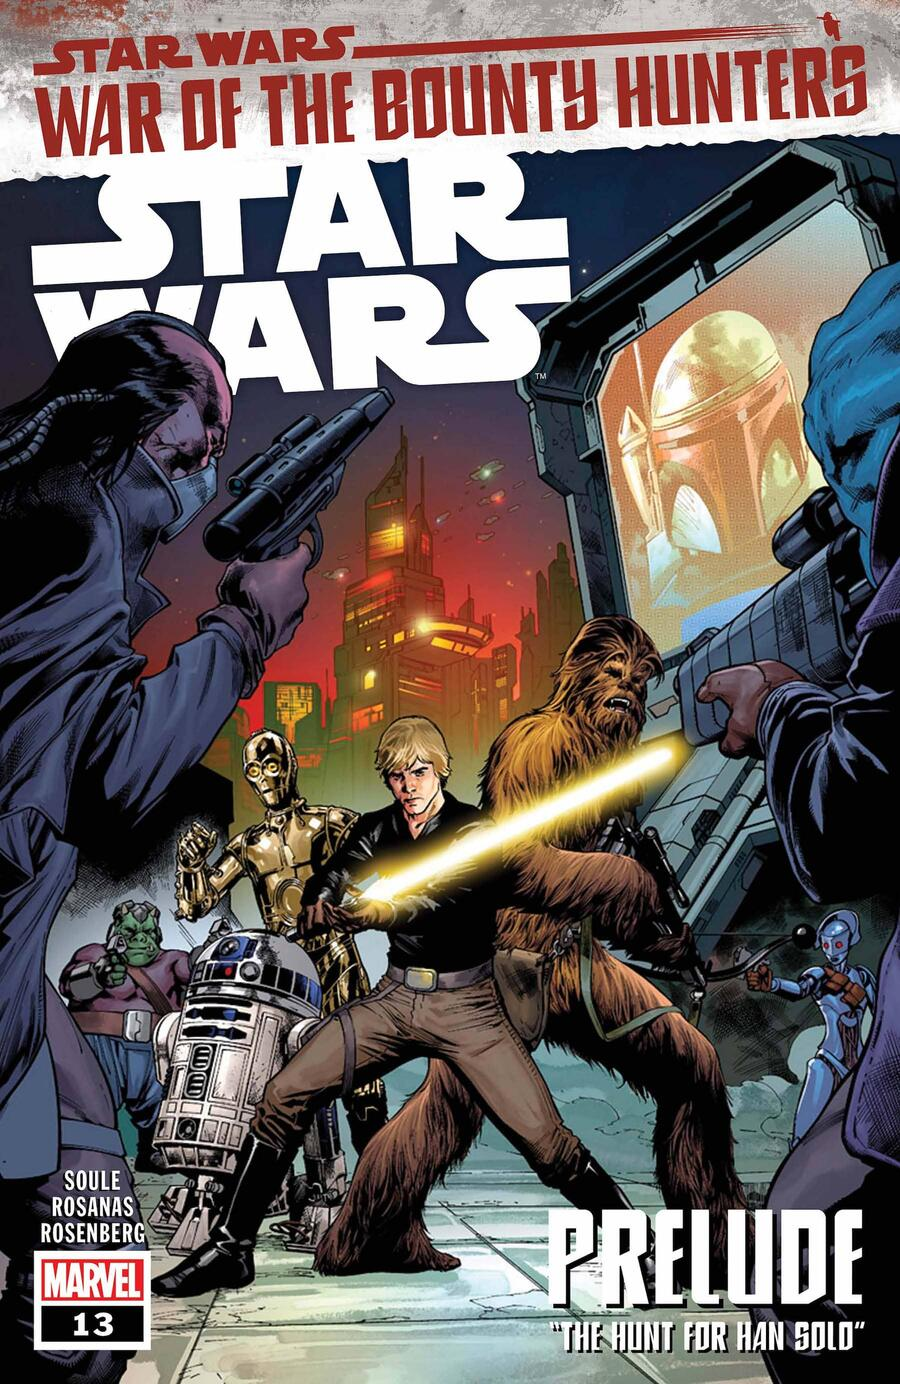 STAR WARS #13 cover by Carlo Pagulayan